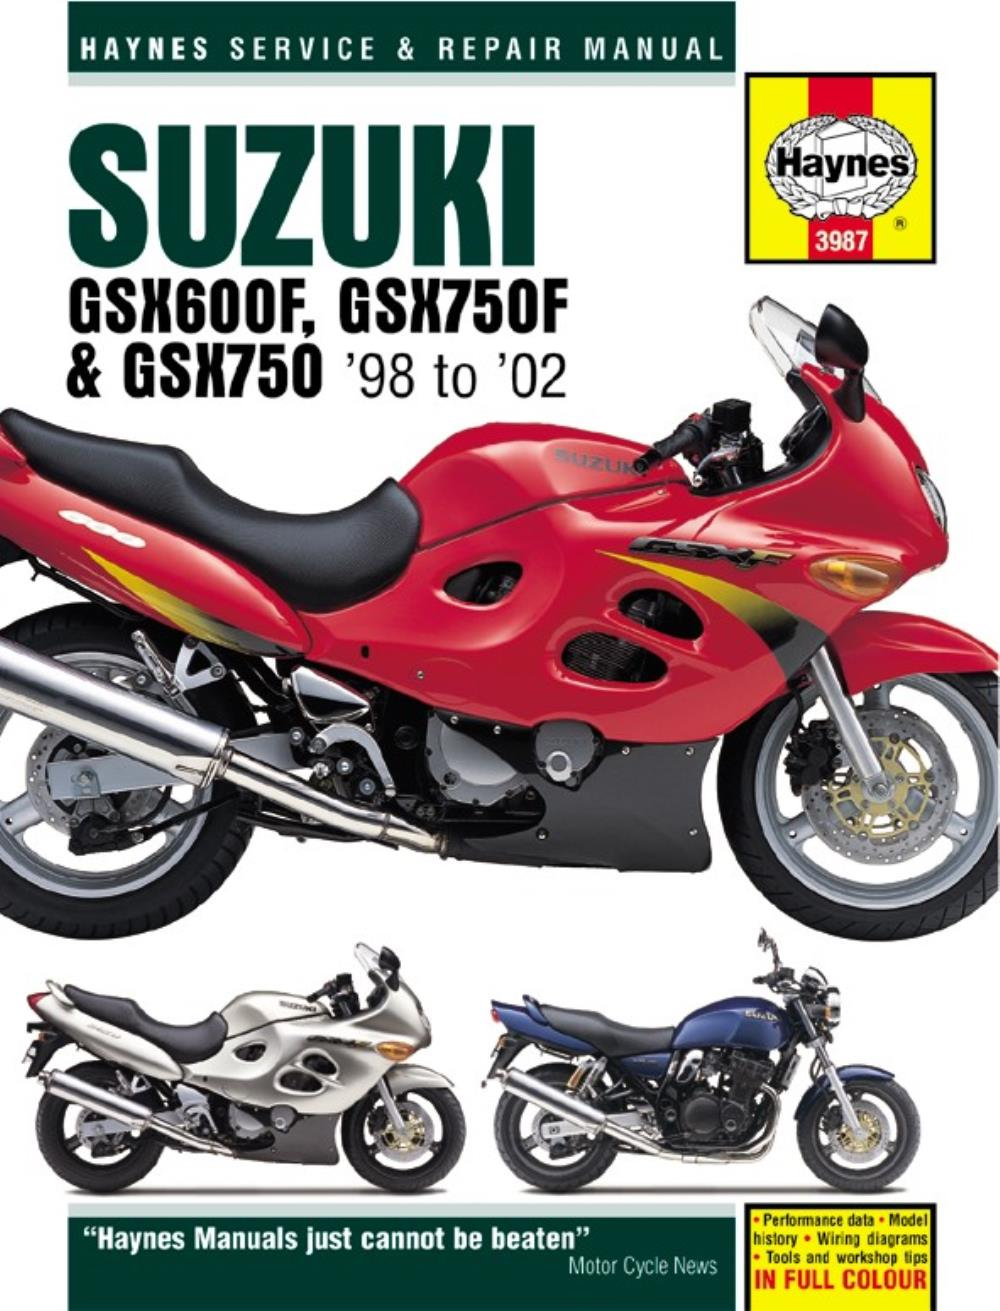 manual haynes for 2002 suzuki gsx 750 f k2 fully faired ebay rh ebay co uk  suzuki gsx750f manual free suzuki gsx 750 f manual download